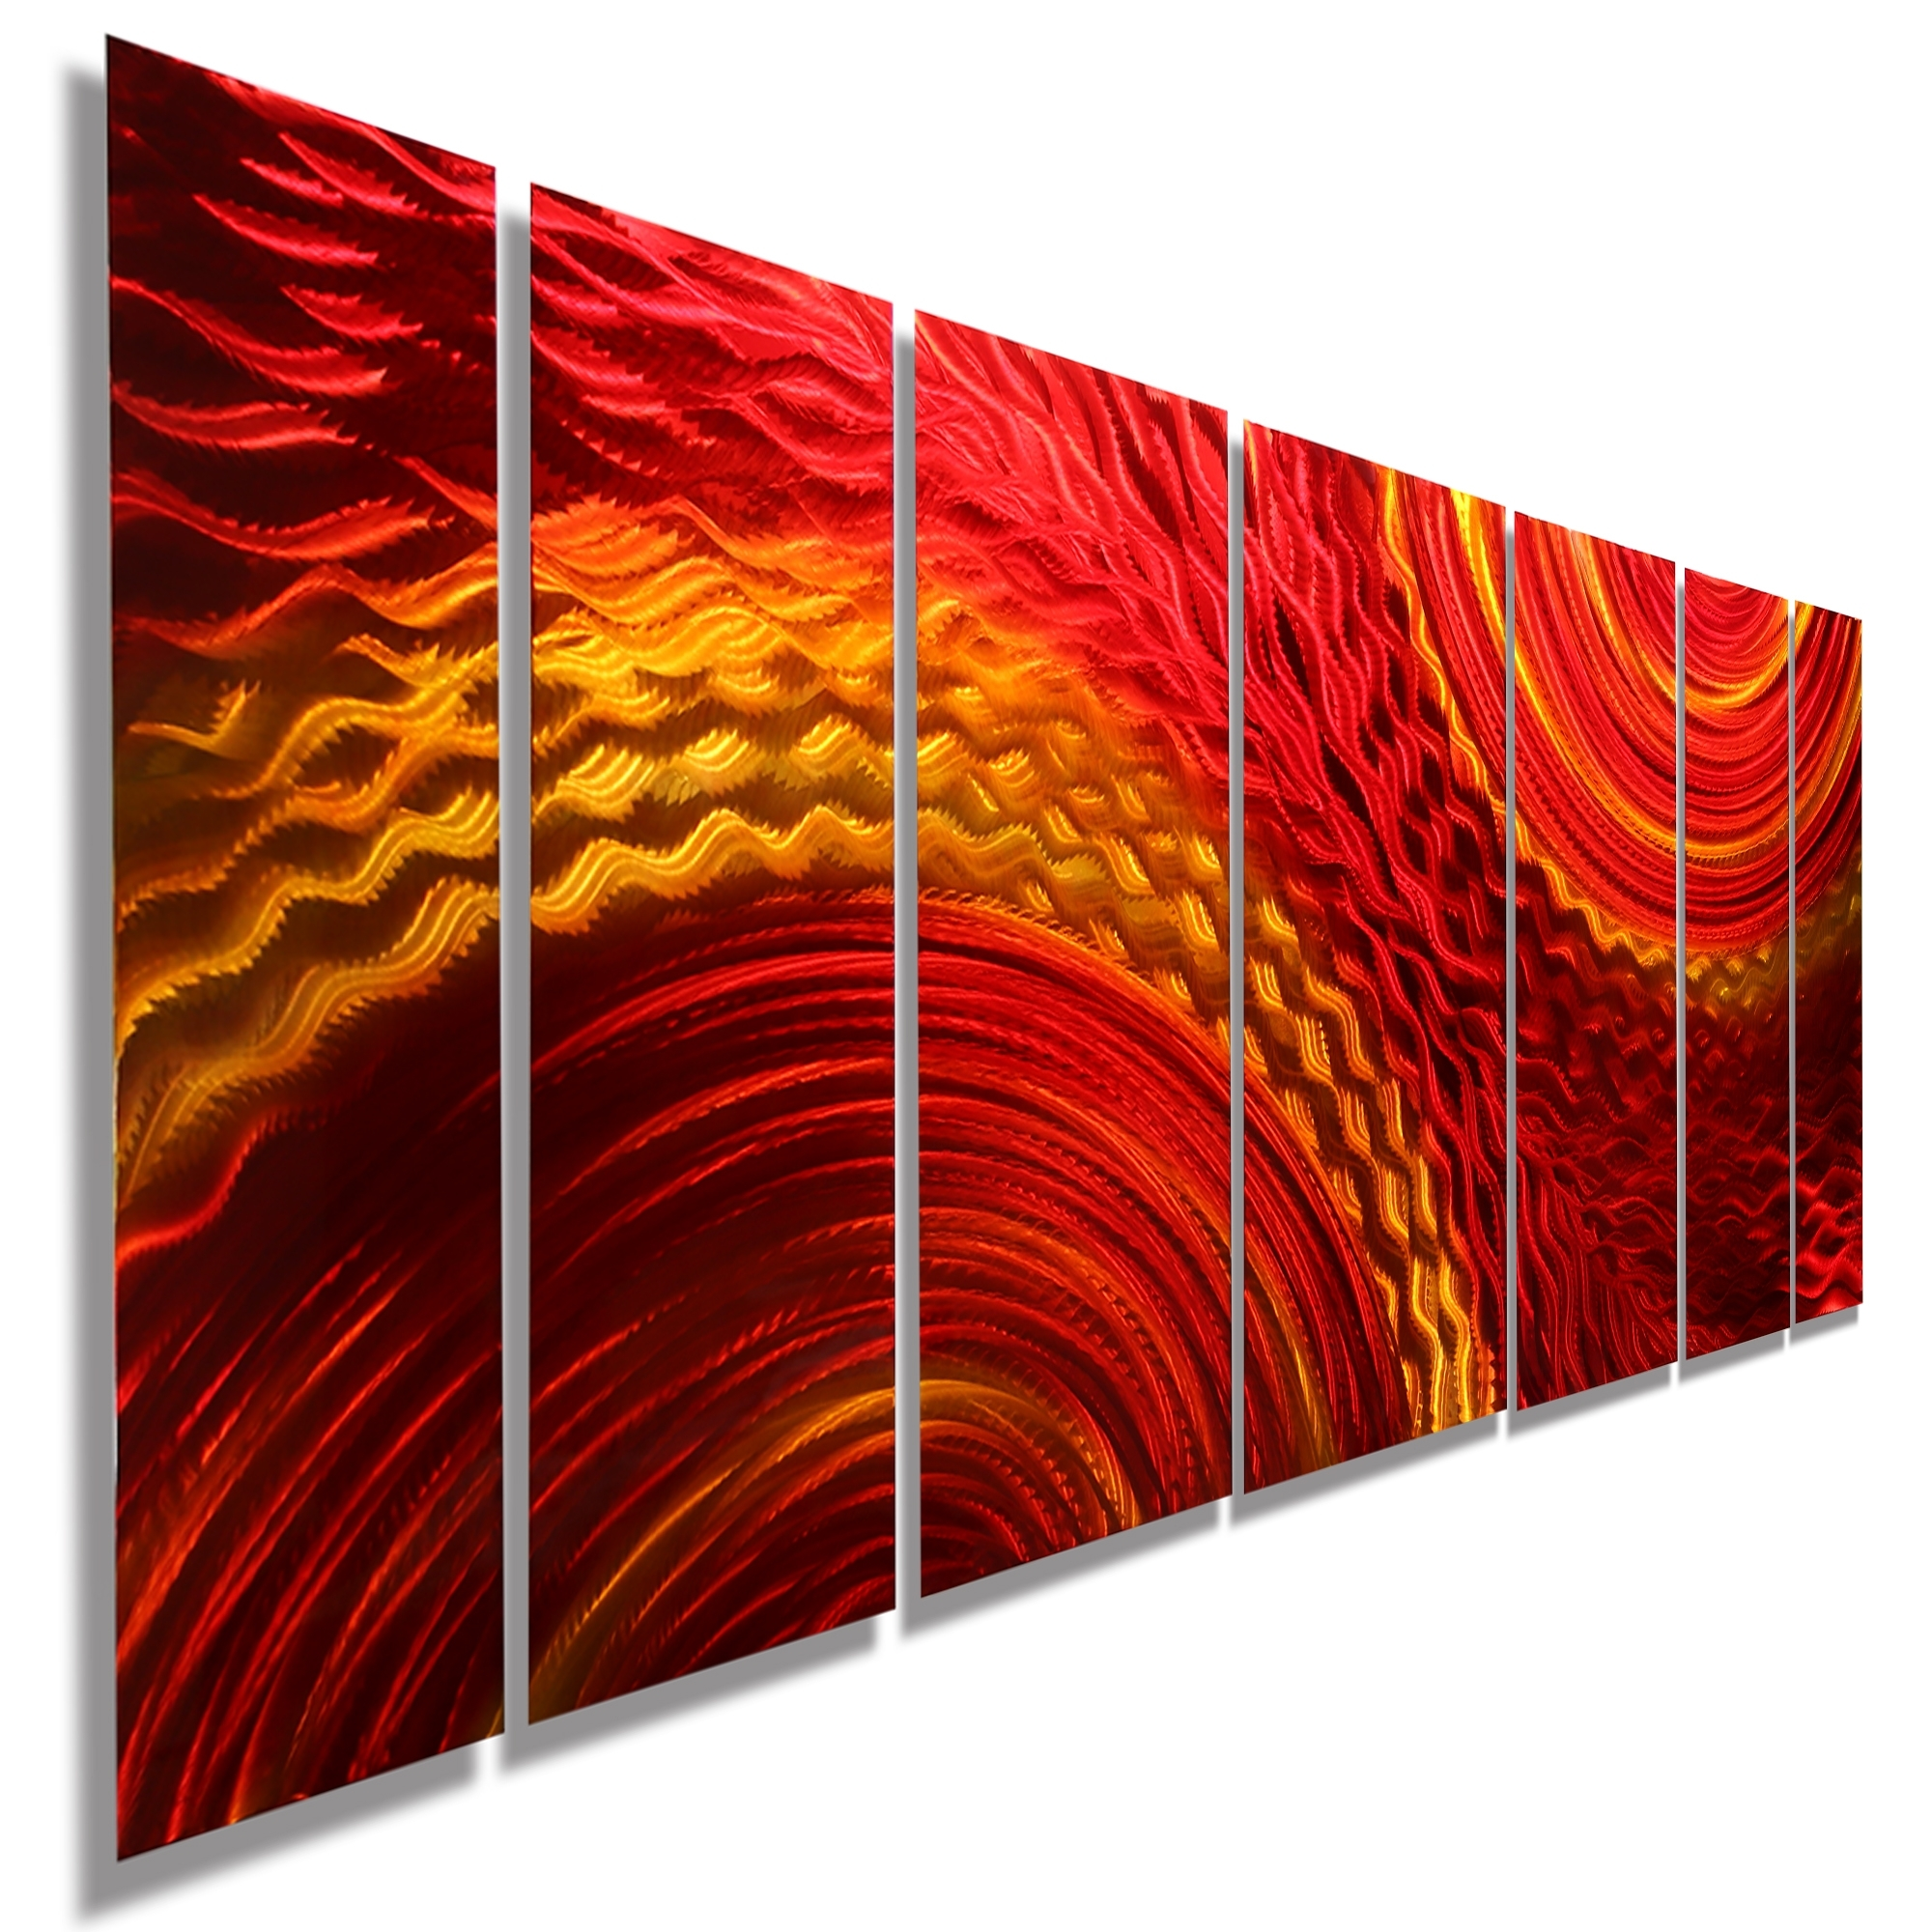 Home Decor: Alluring Abstract Metal Wall Art With Harvest Moods Xl Throughout Newest Abstract Metal Wall Art Australia (View 9 of 15)